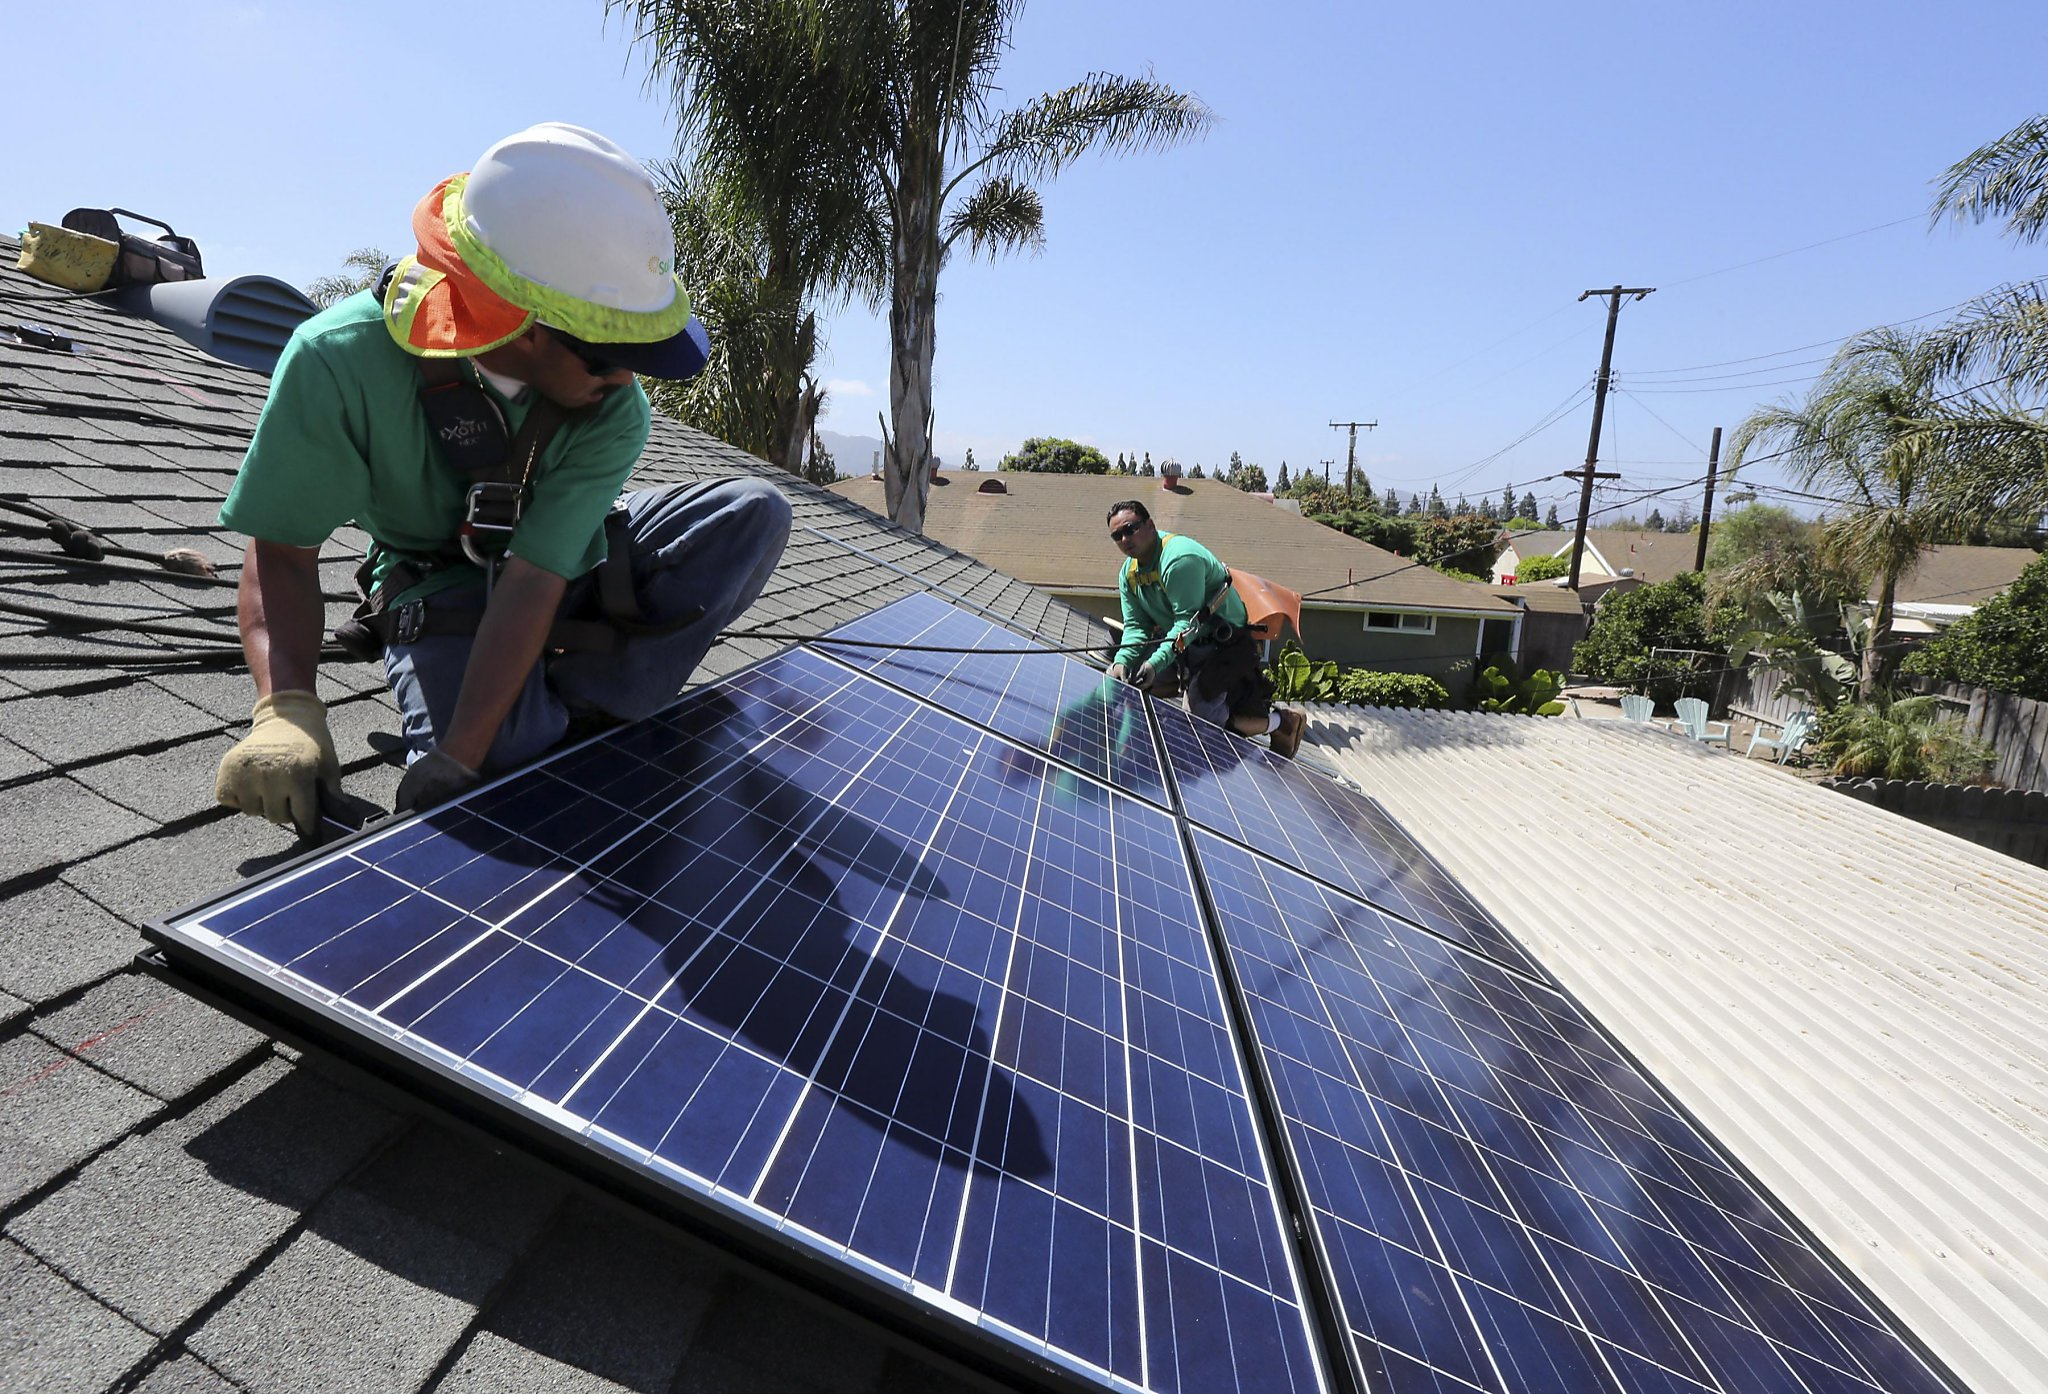 early records of solar energy use And use alternative 30-6-2017 a compromise bill to overhaul solar policy in north carolina is on its way to the governor but critics say wind energy paid too high a.